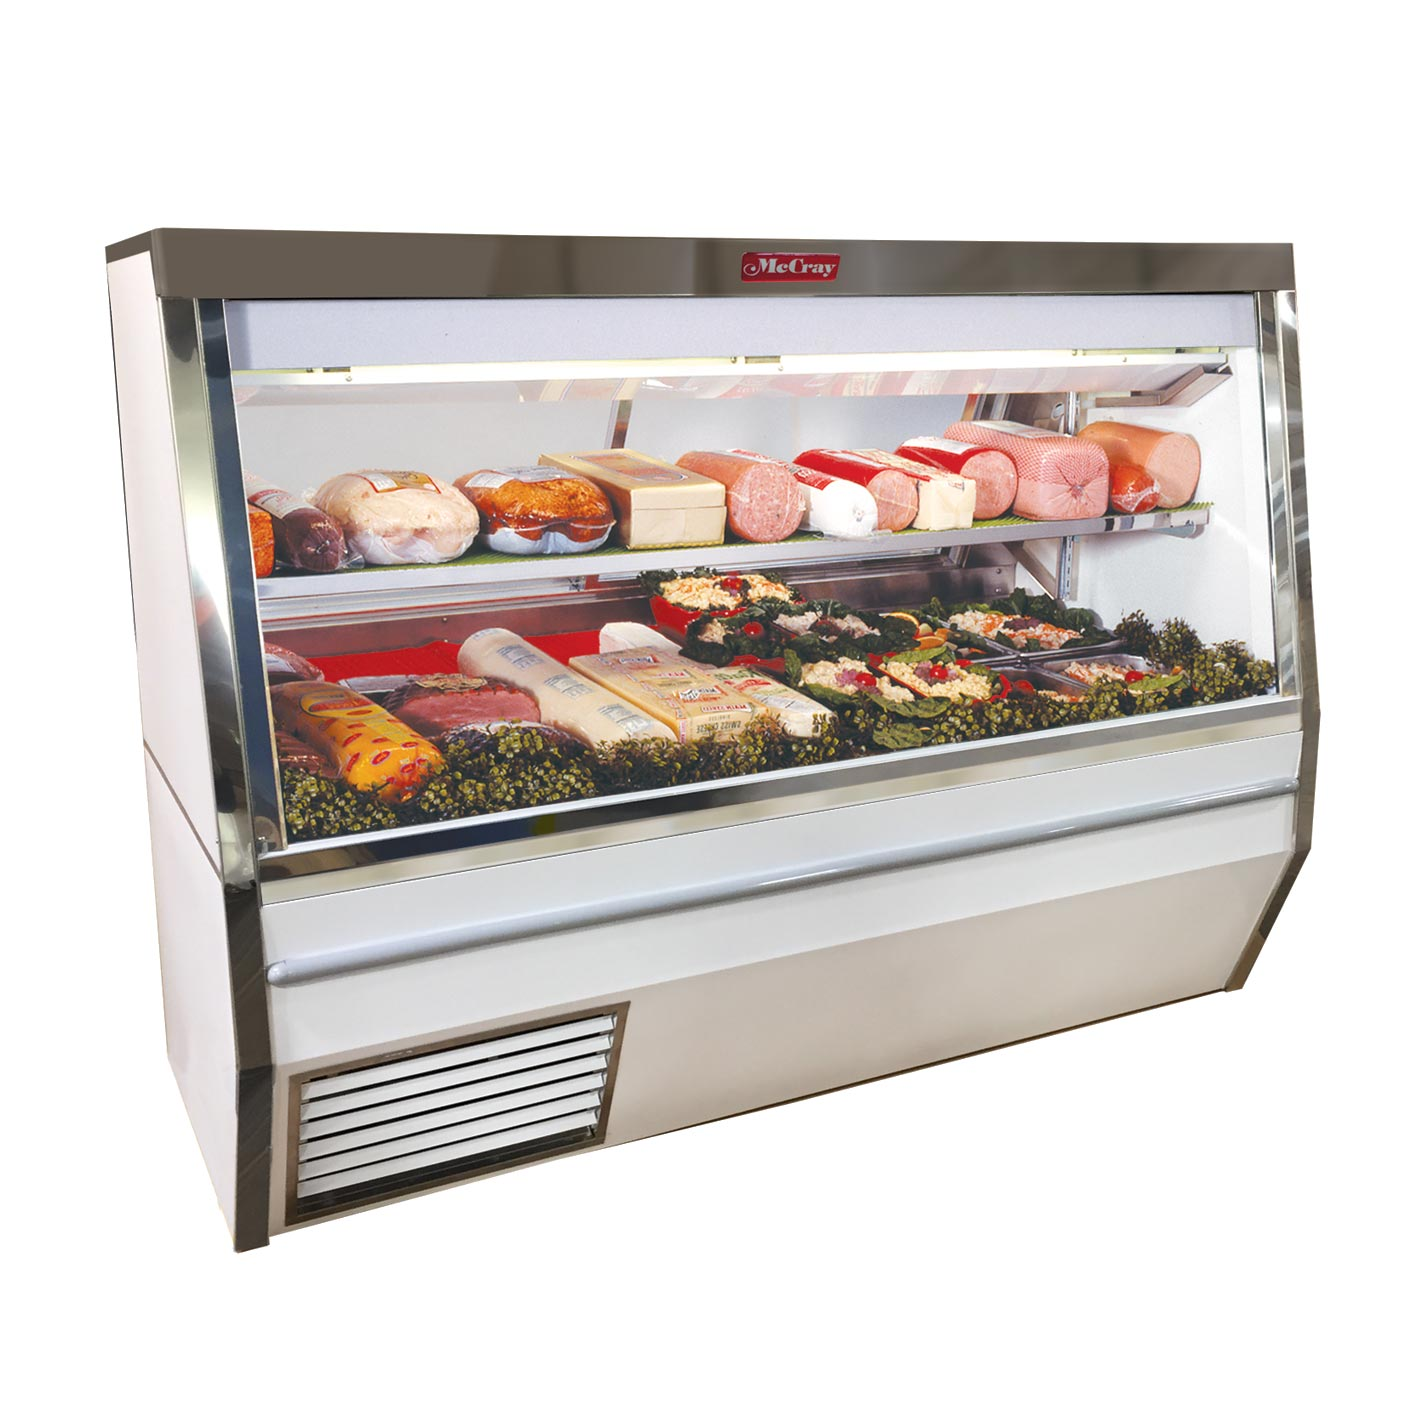 Howard-McCray SC-CDS34N-12-LS-LED display case, refrigerated deli